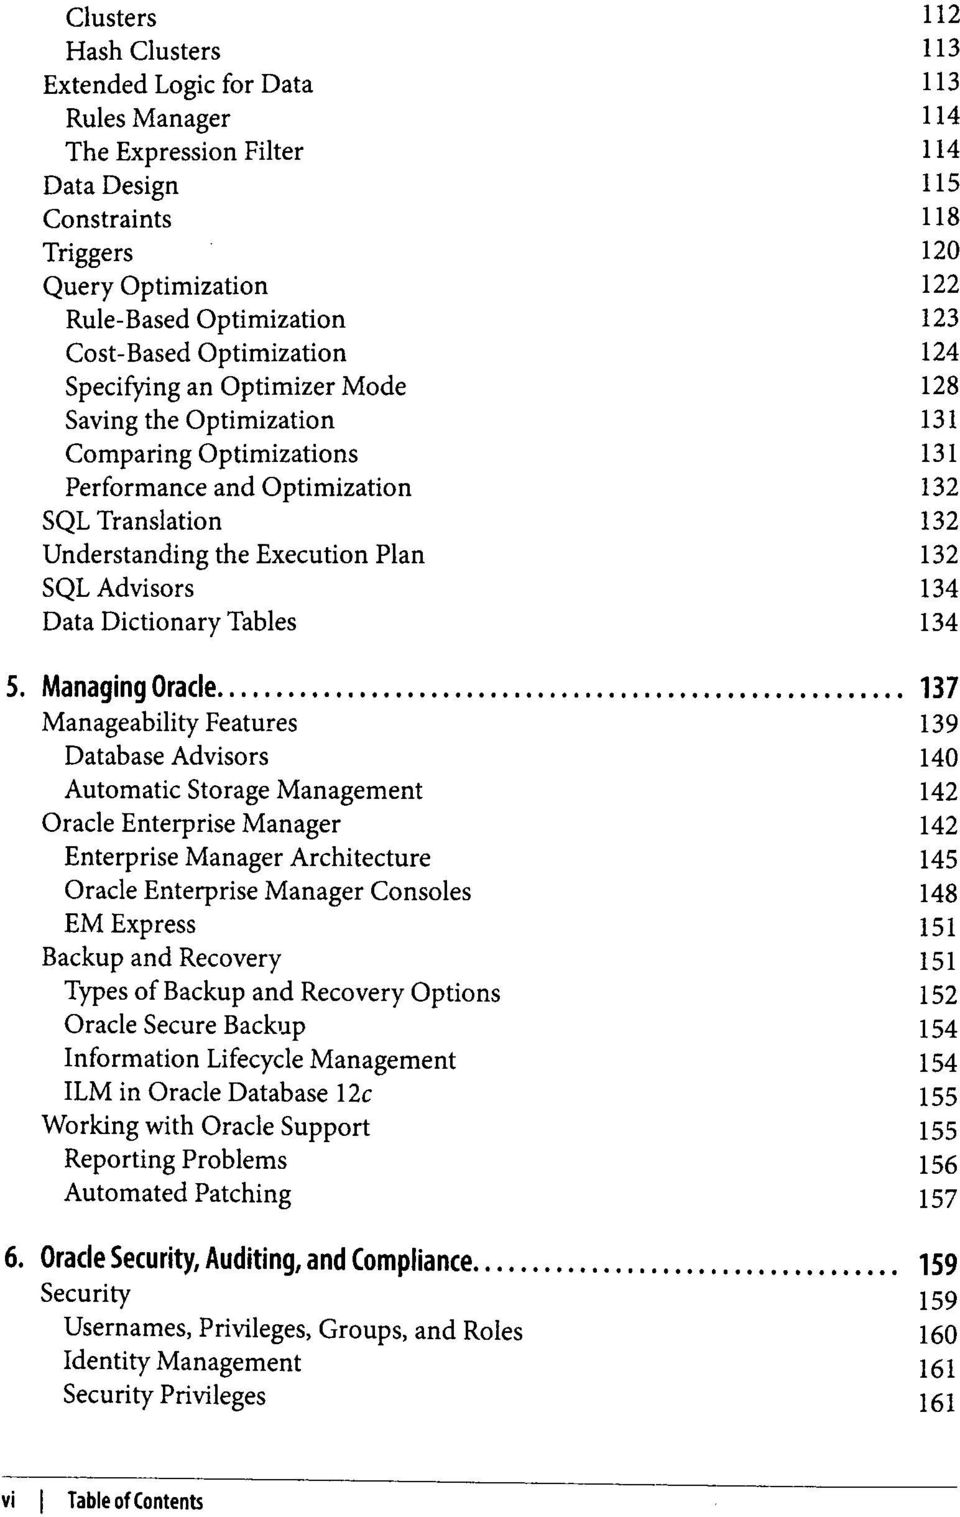 Plan 132 SQL Advisors 134 Data Dictionary Tables 134 H5 5.